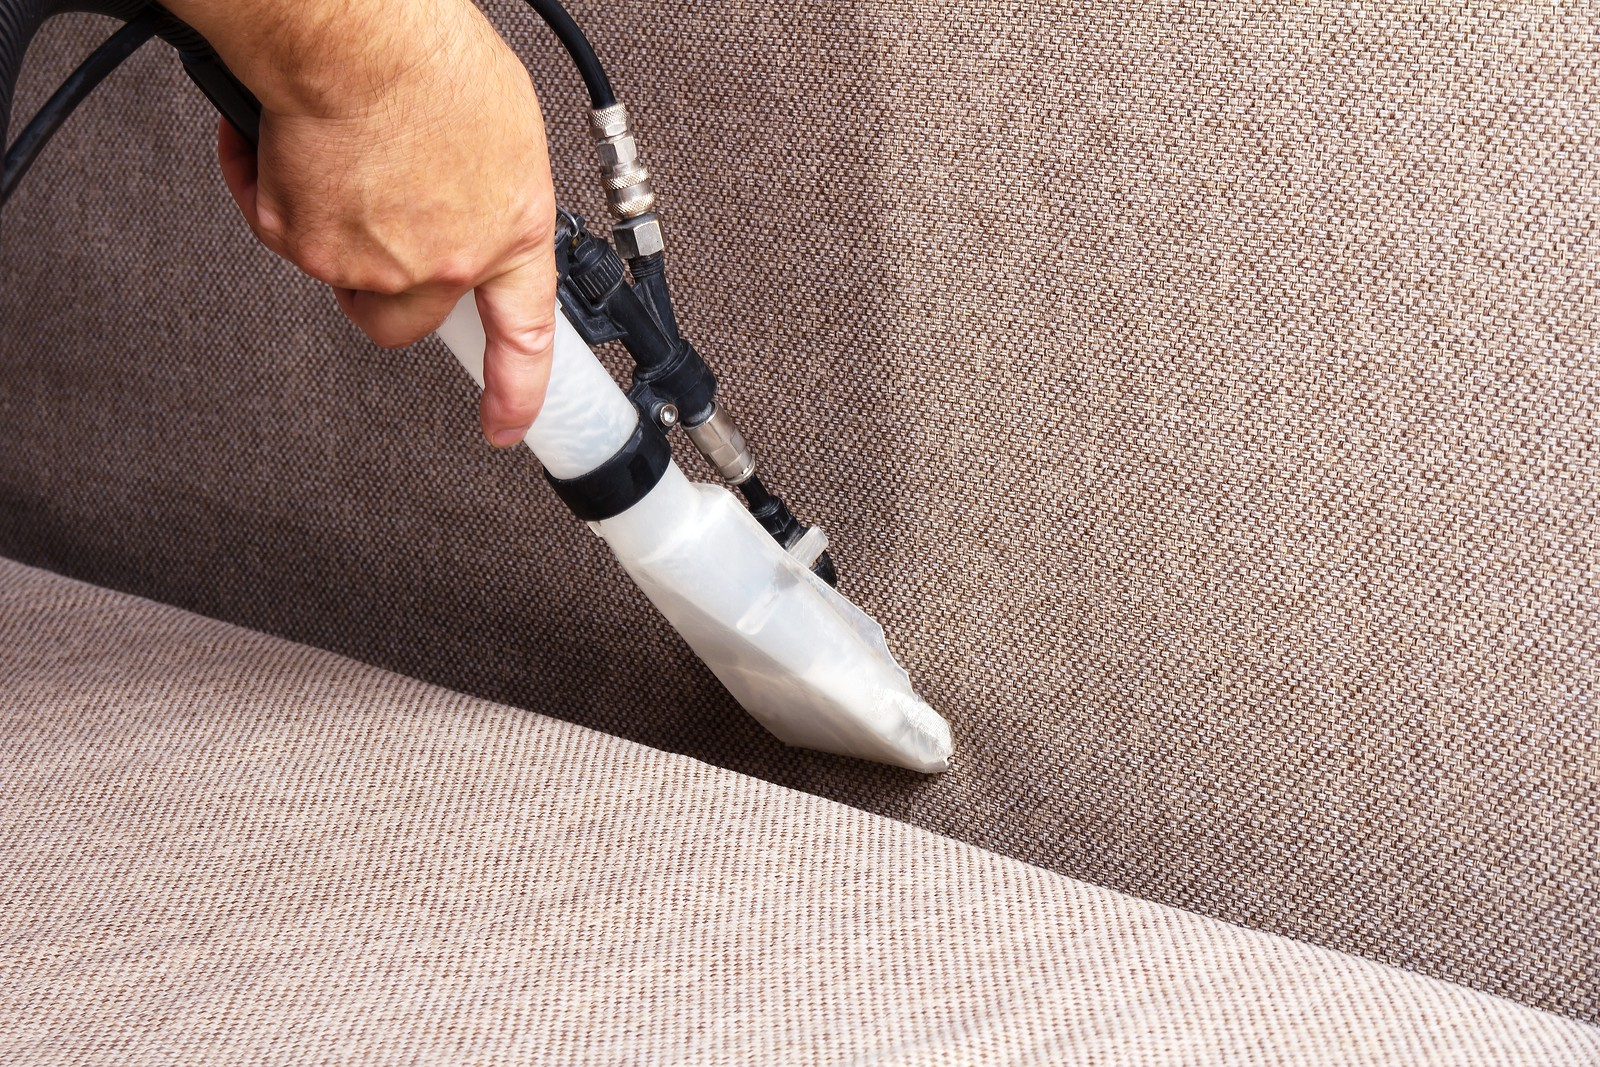 Professional Carpet Cleaning Services Do More than the Usual Vacuum   by  HeavensBestCleaningPros   Medium